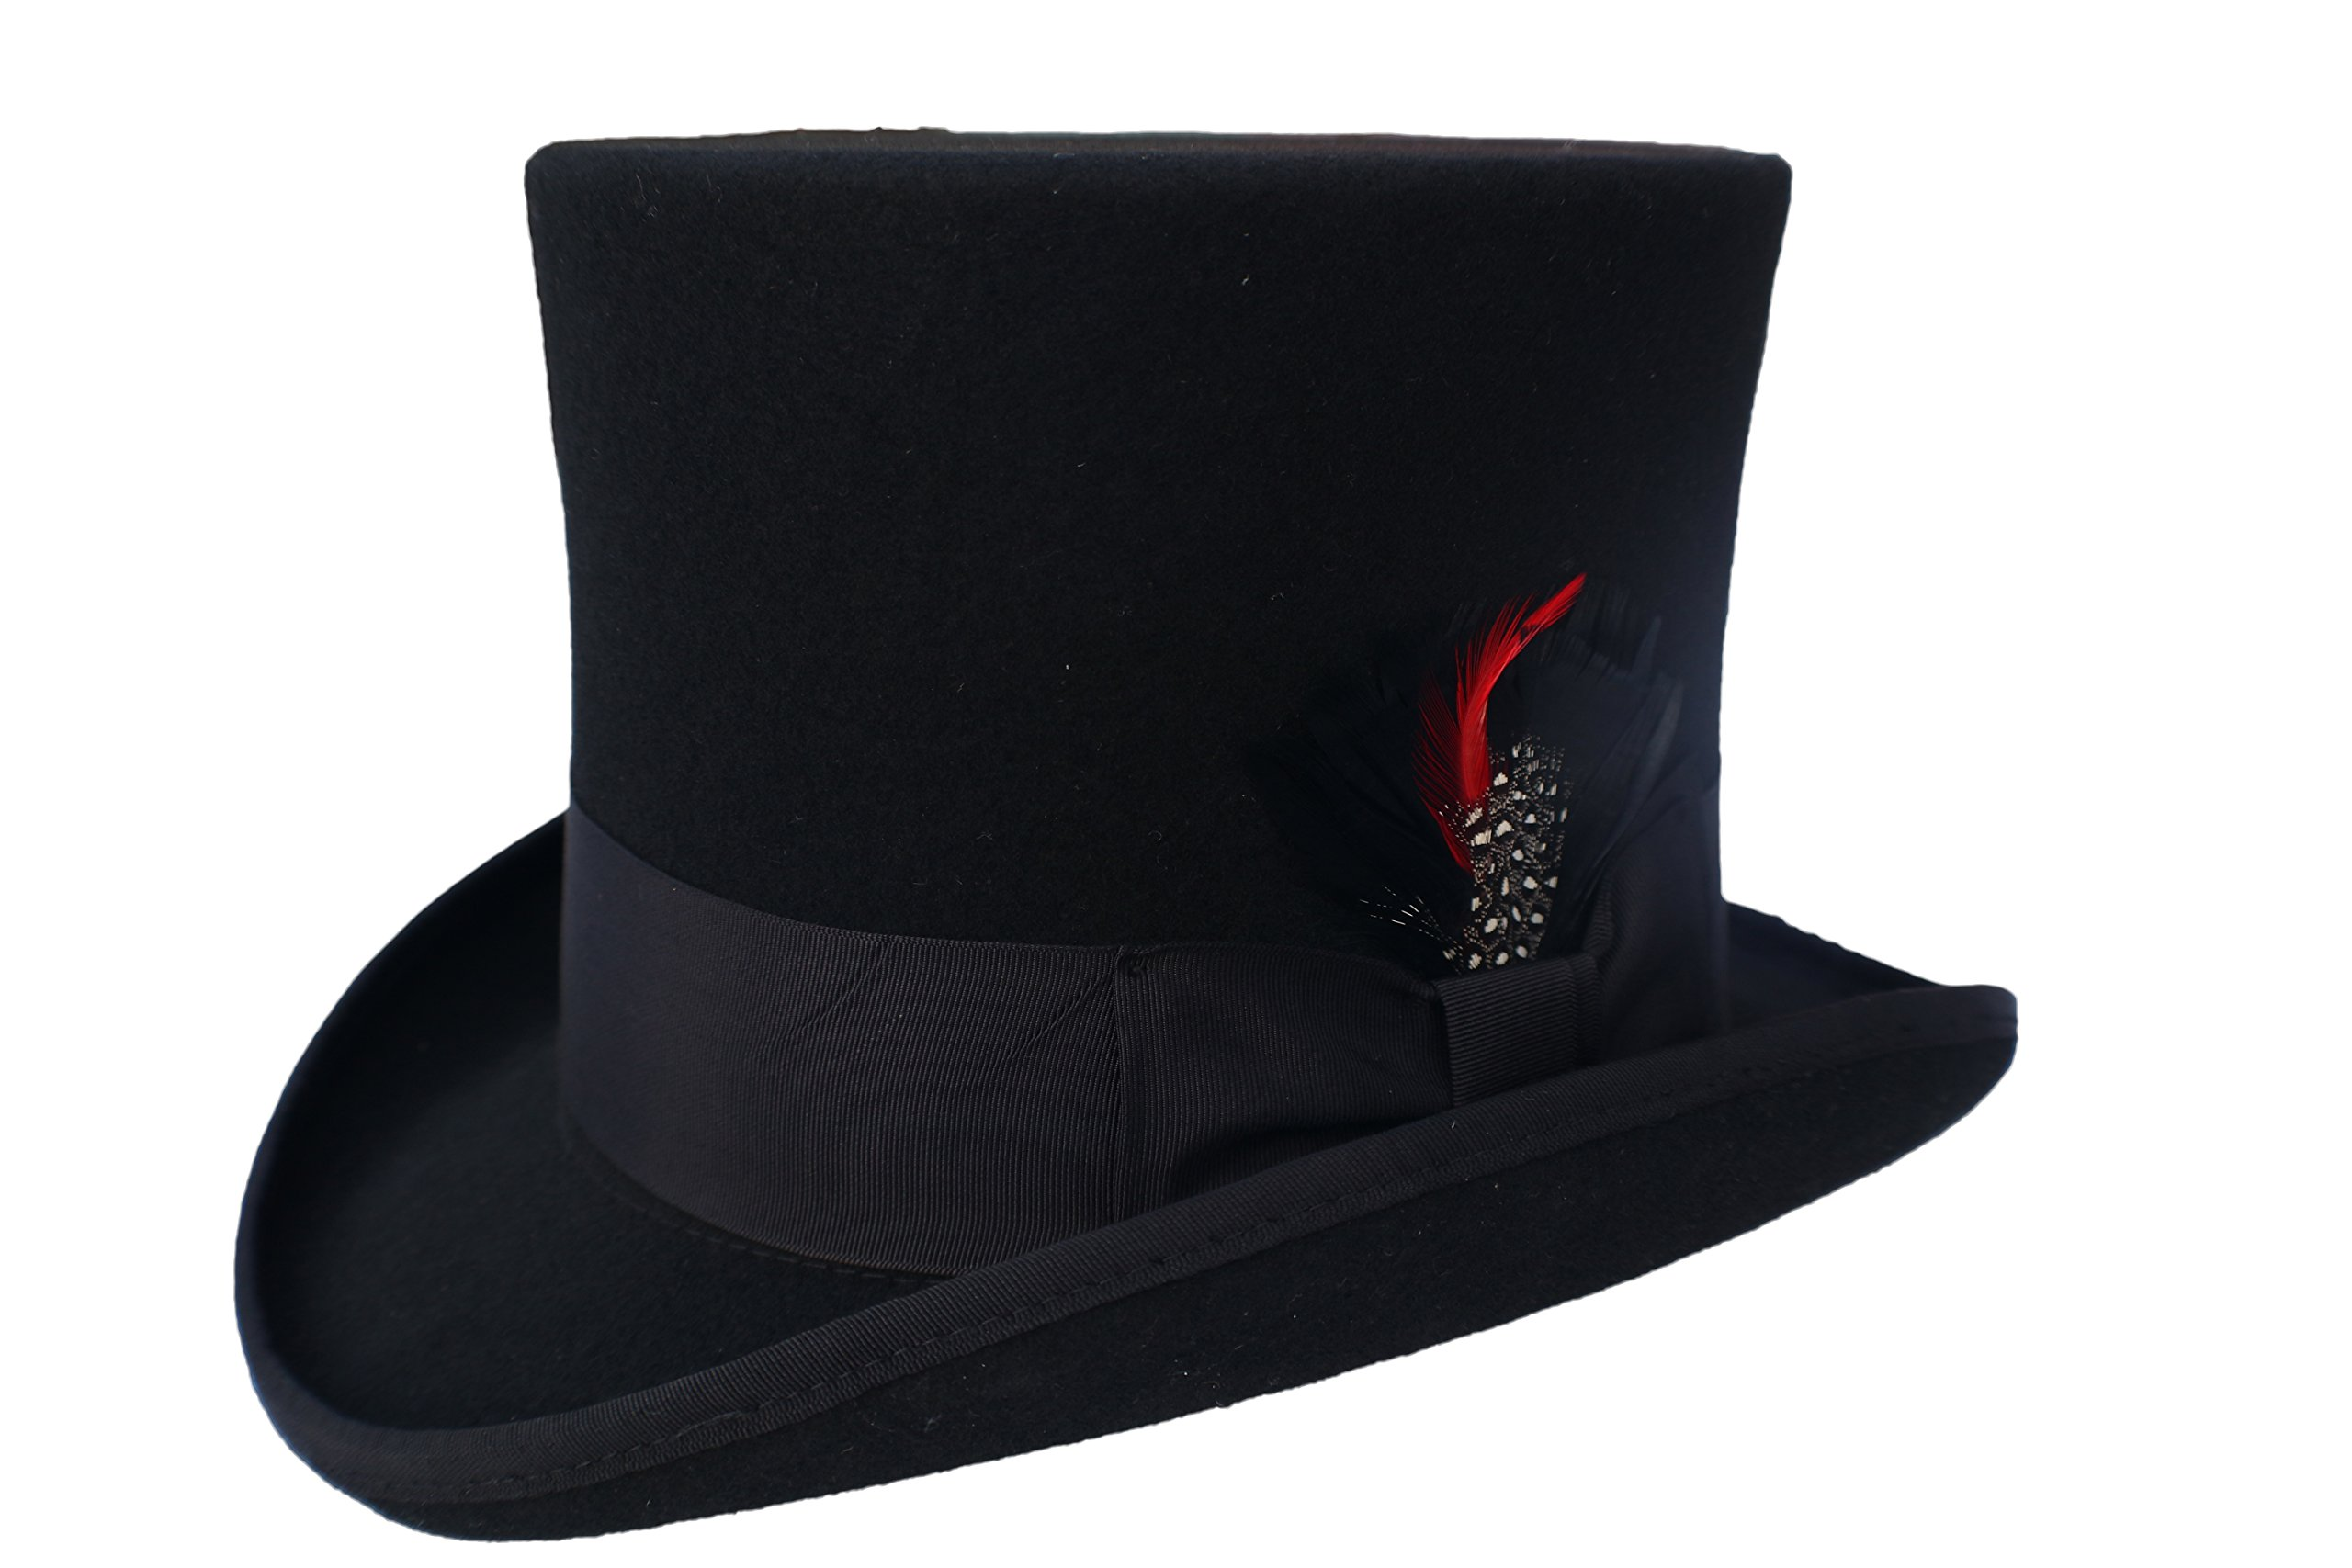 Elegante Men's Black Top Hat - 100% Wool (Small)